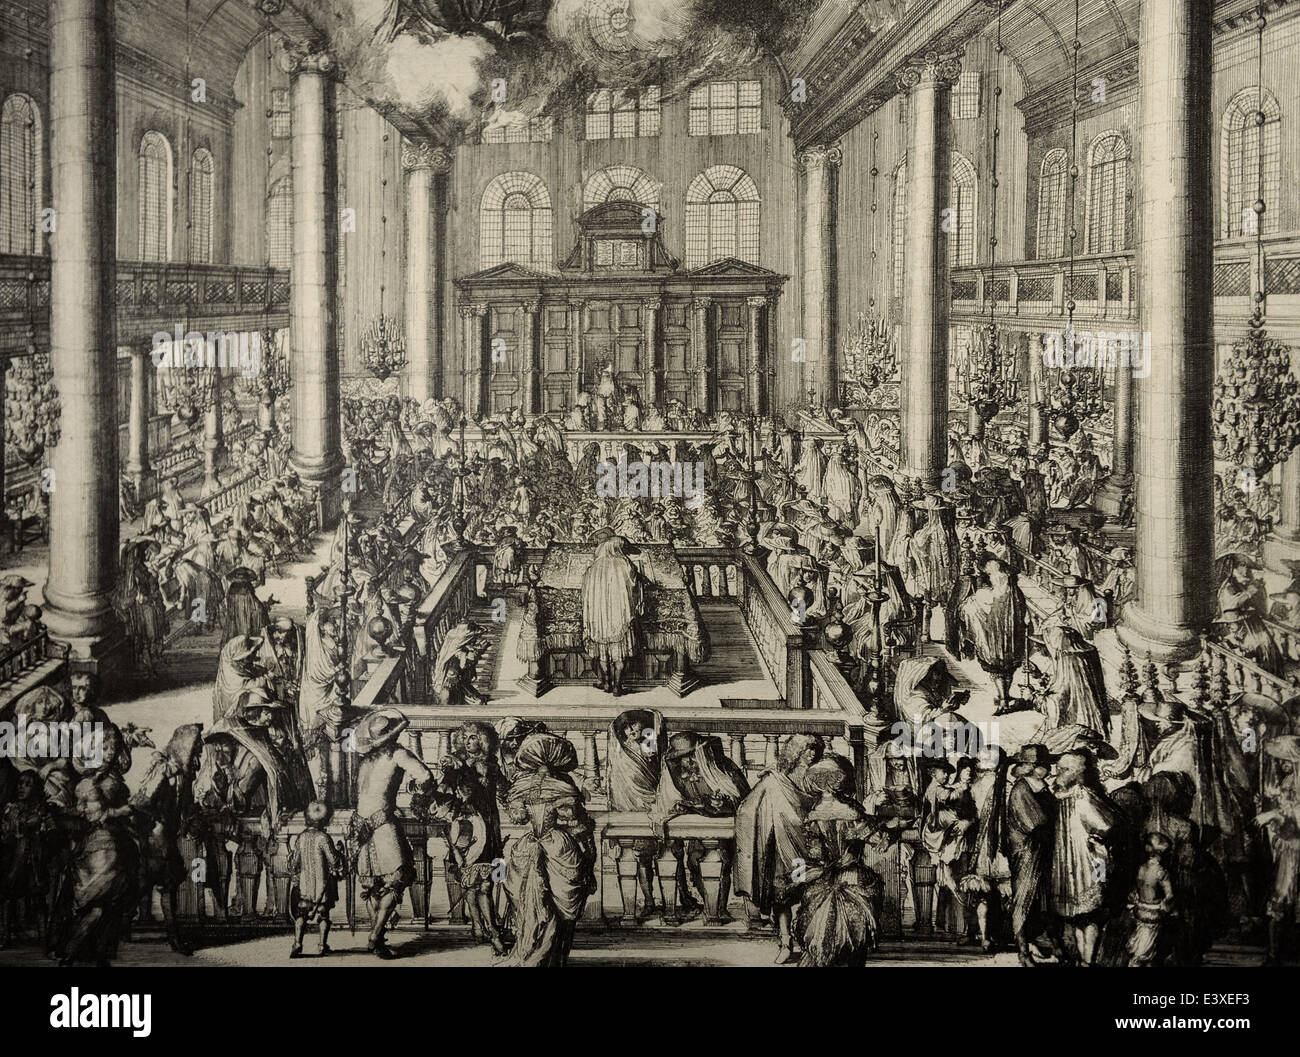 Portuguese Synagogue in Amsterdam. Inside. Scene cult initiation, 1675. Engraving. - Stock Image